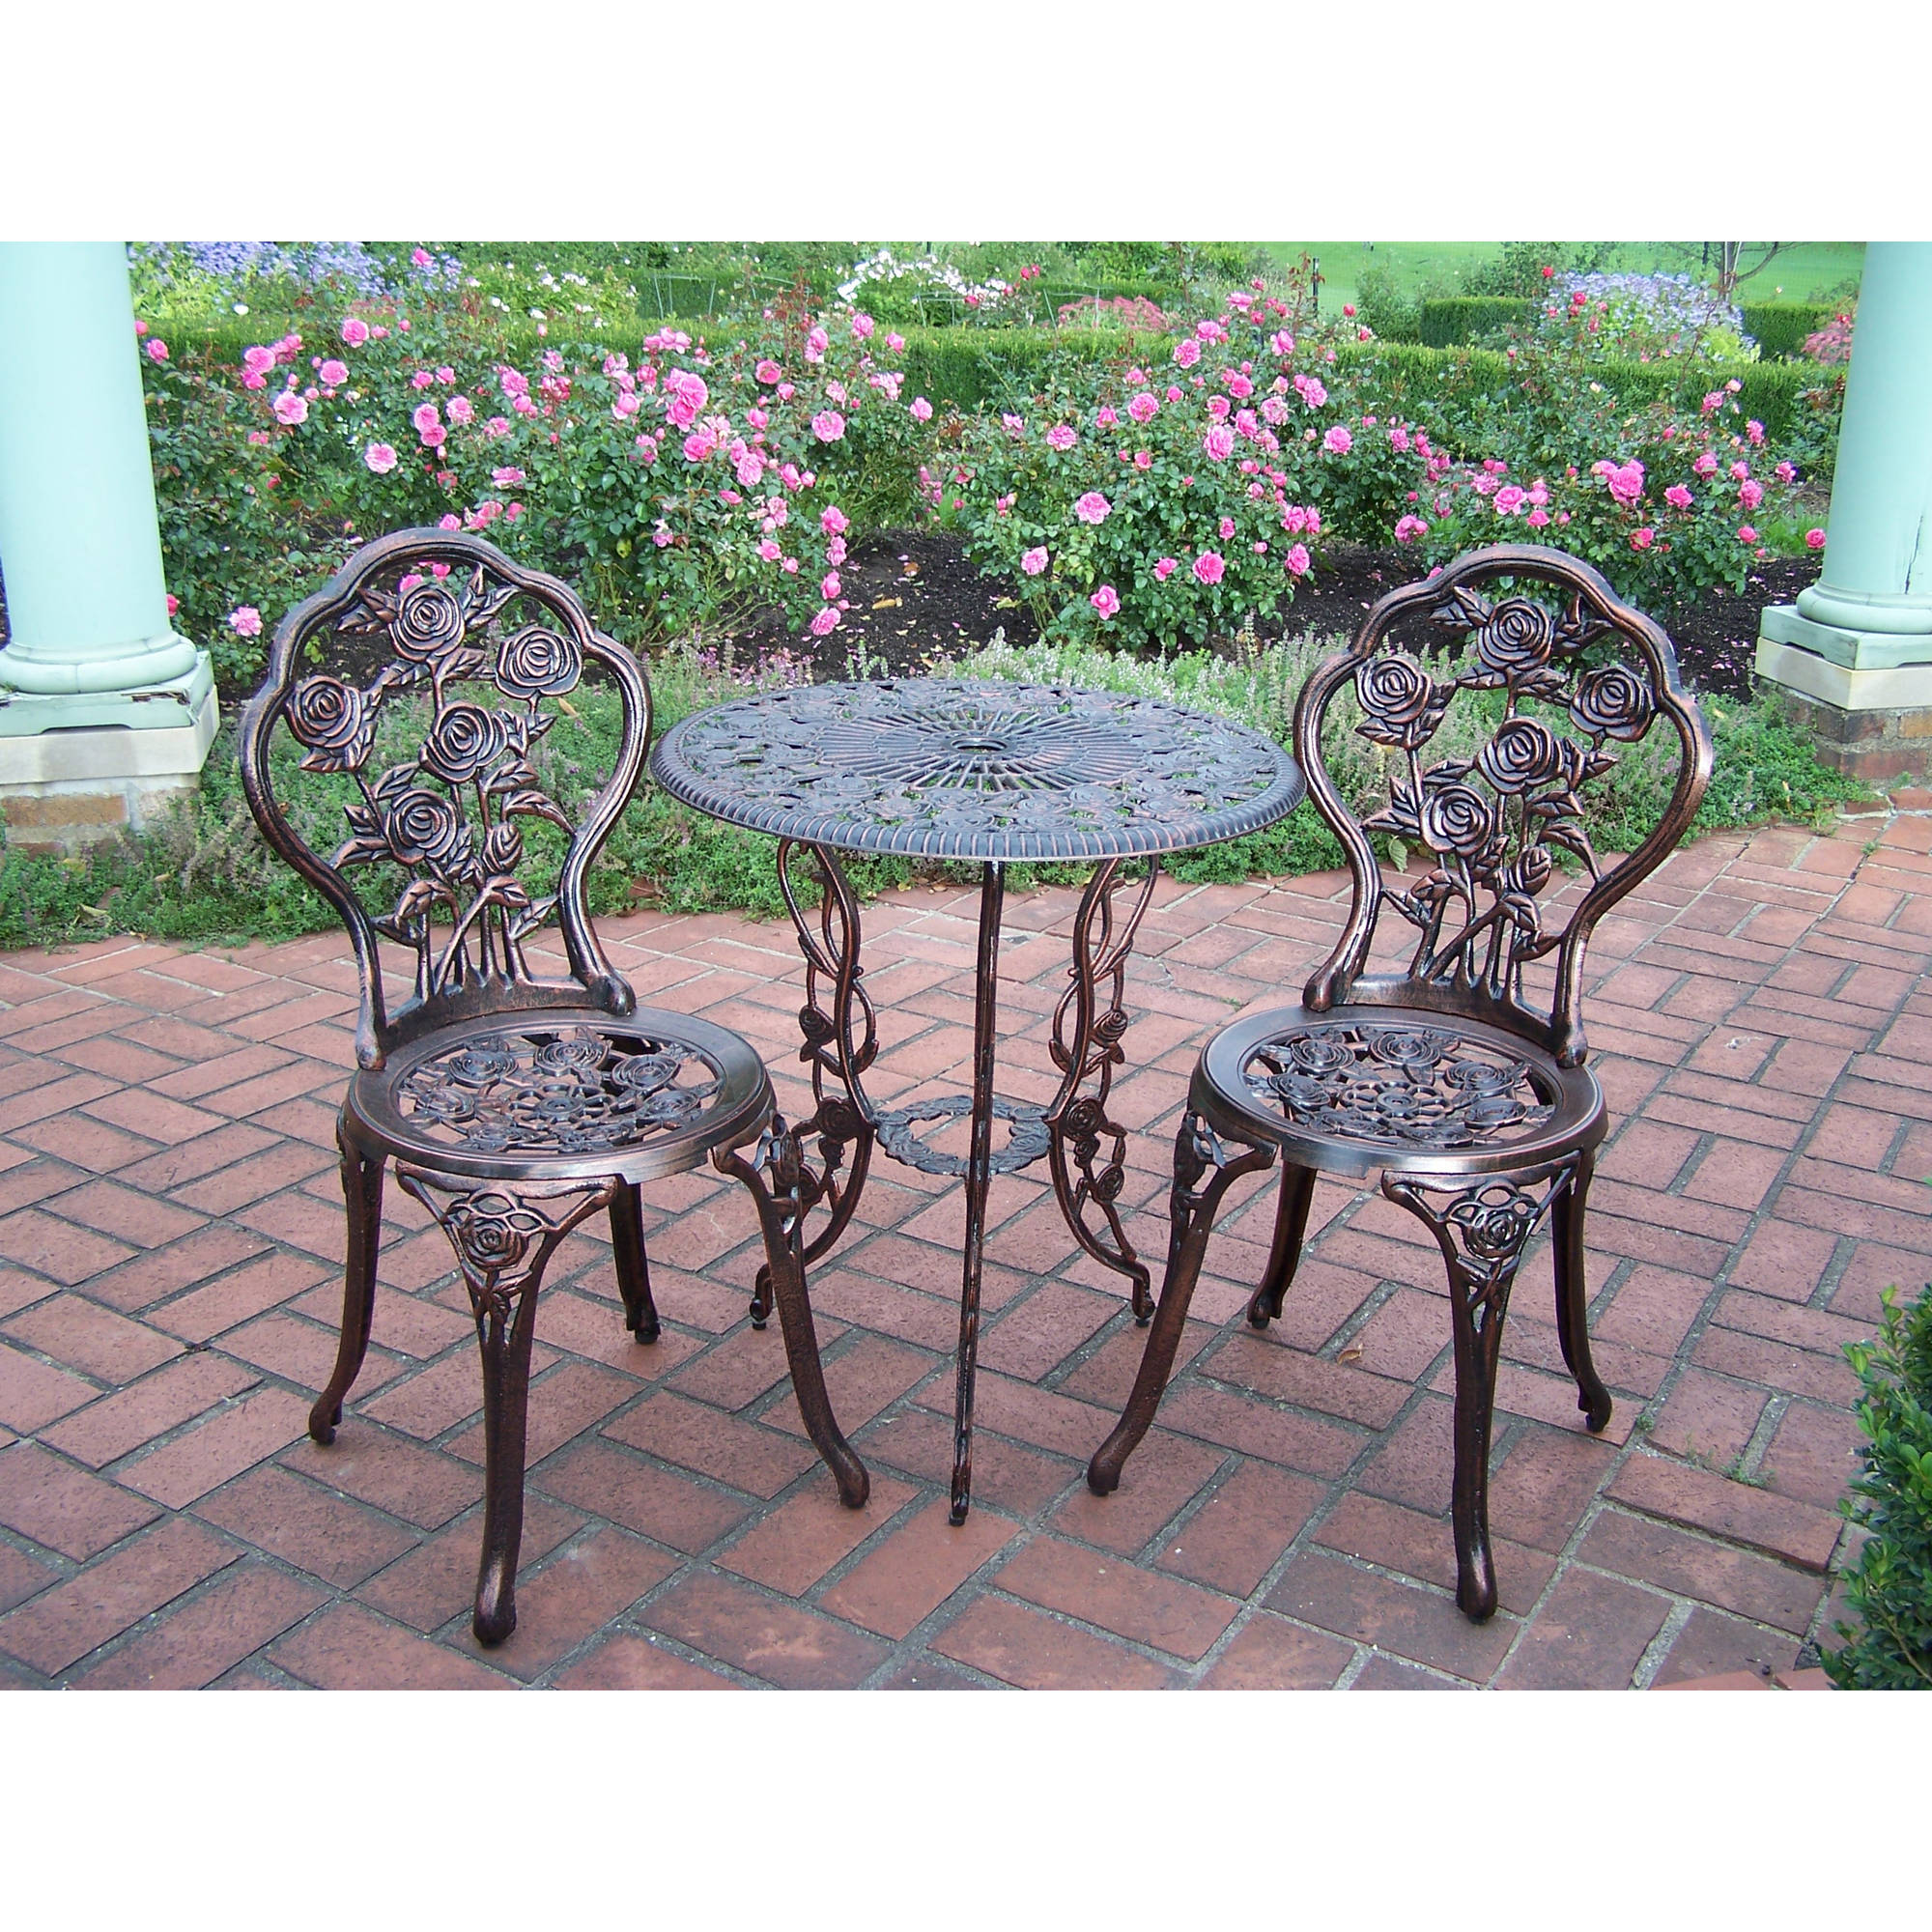 com bronze traditions for lowes shop piece natural with reviews frame pl dining at patio outdoors sets metal furniture display set product